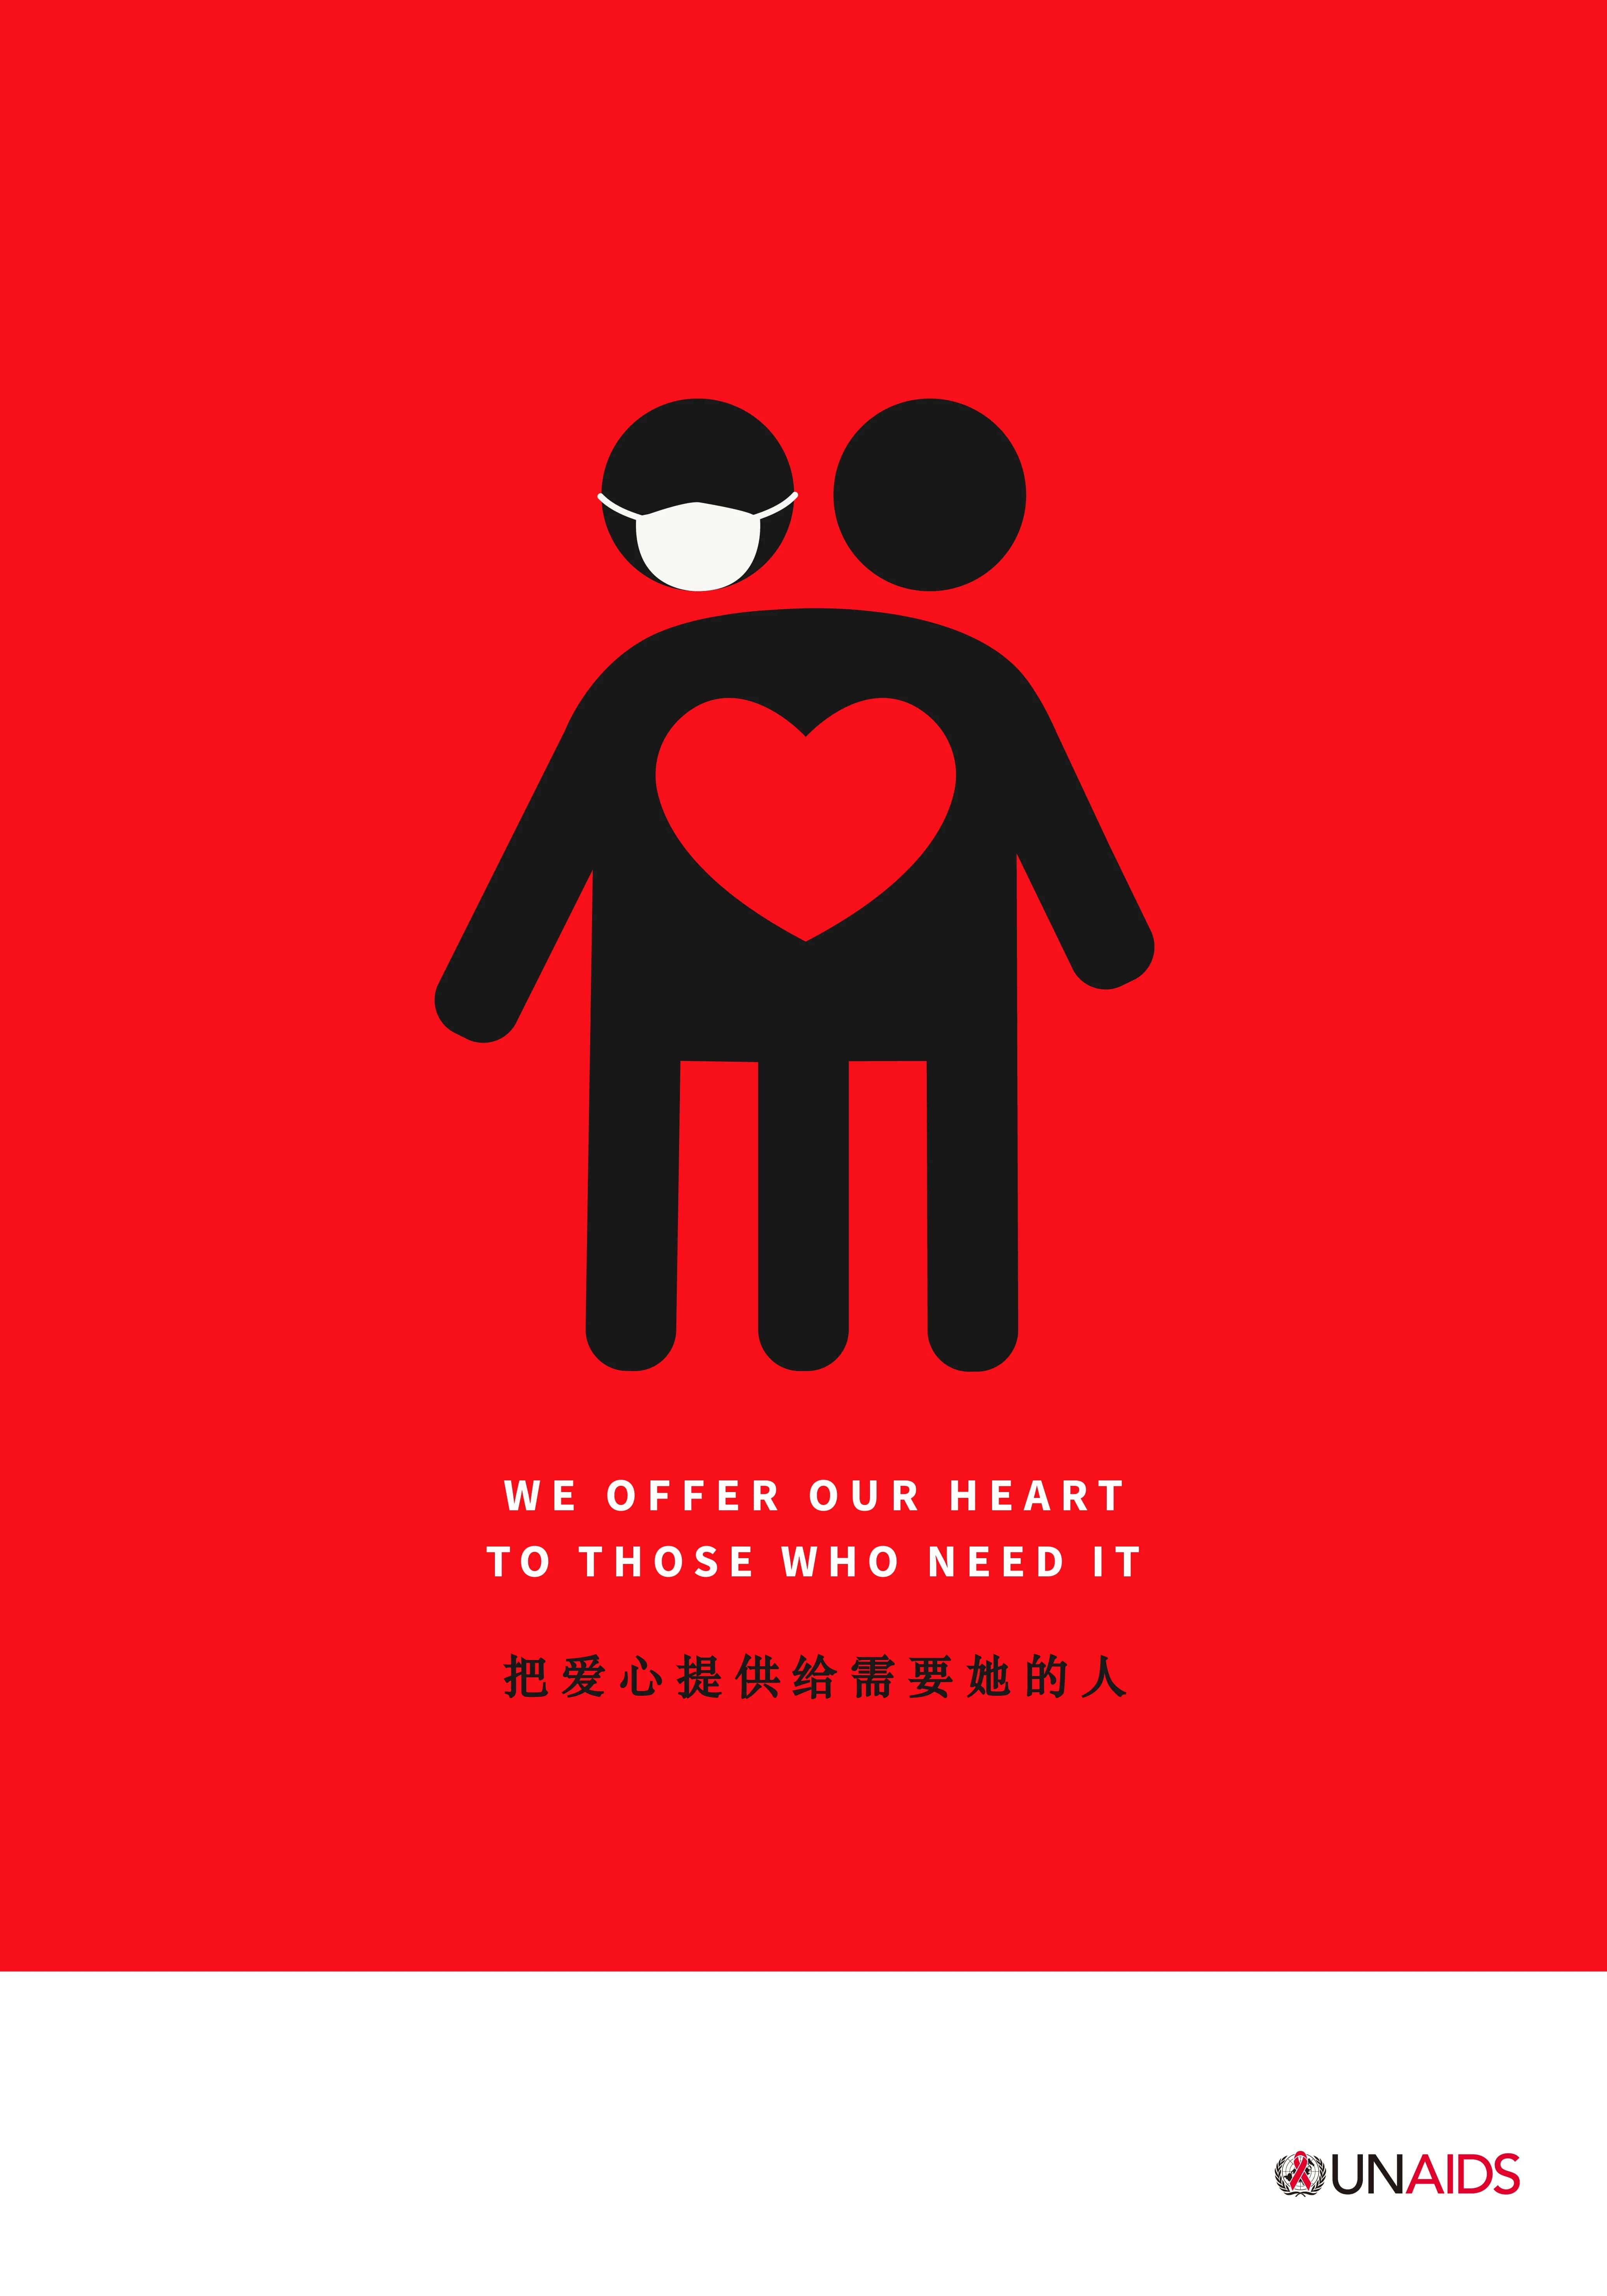 We offer our heart - International Poster ExhIbition by UN AIDS-01